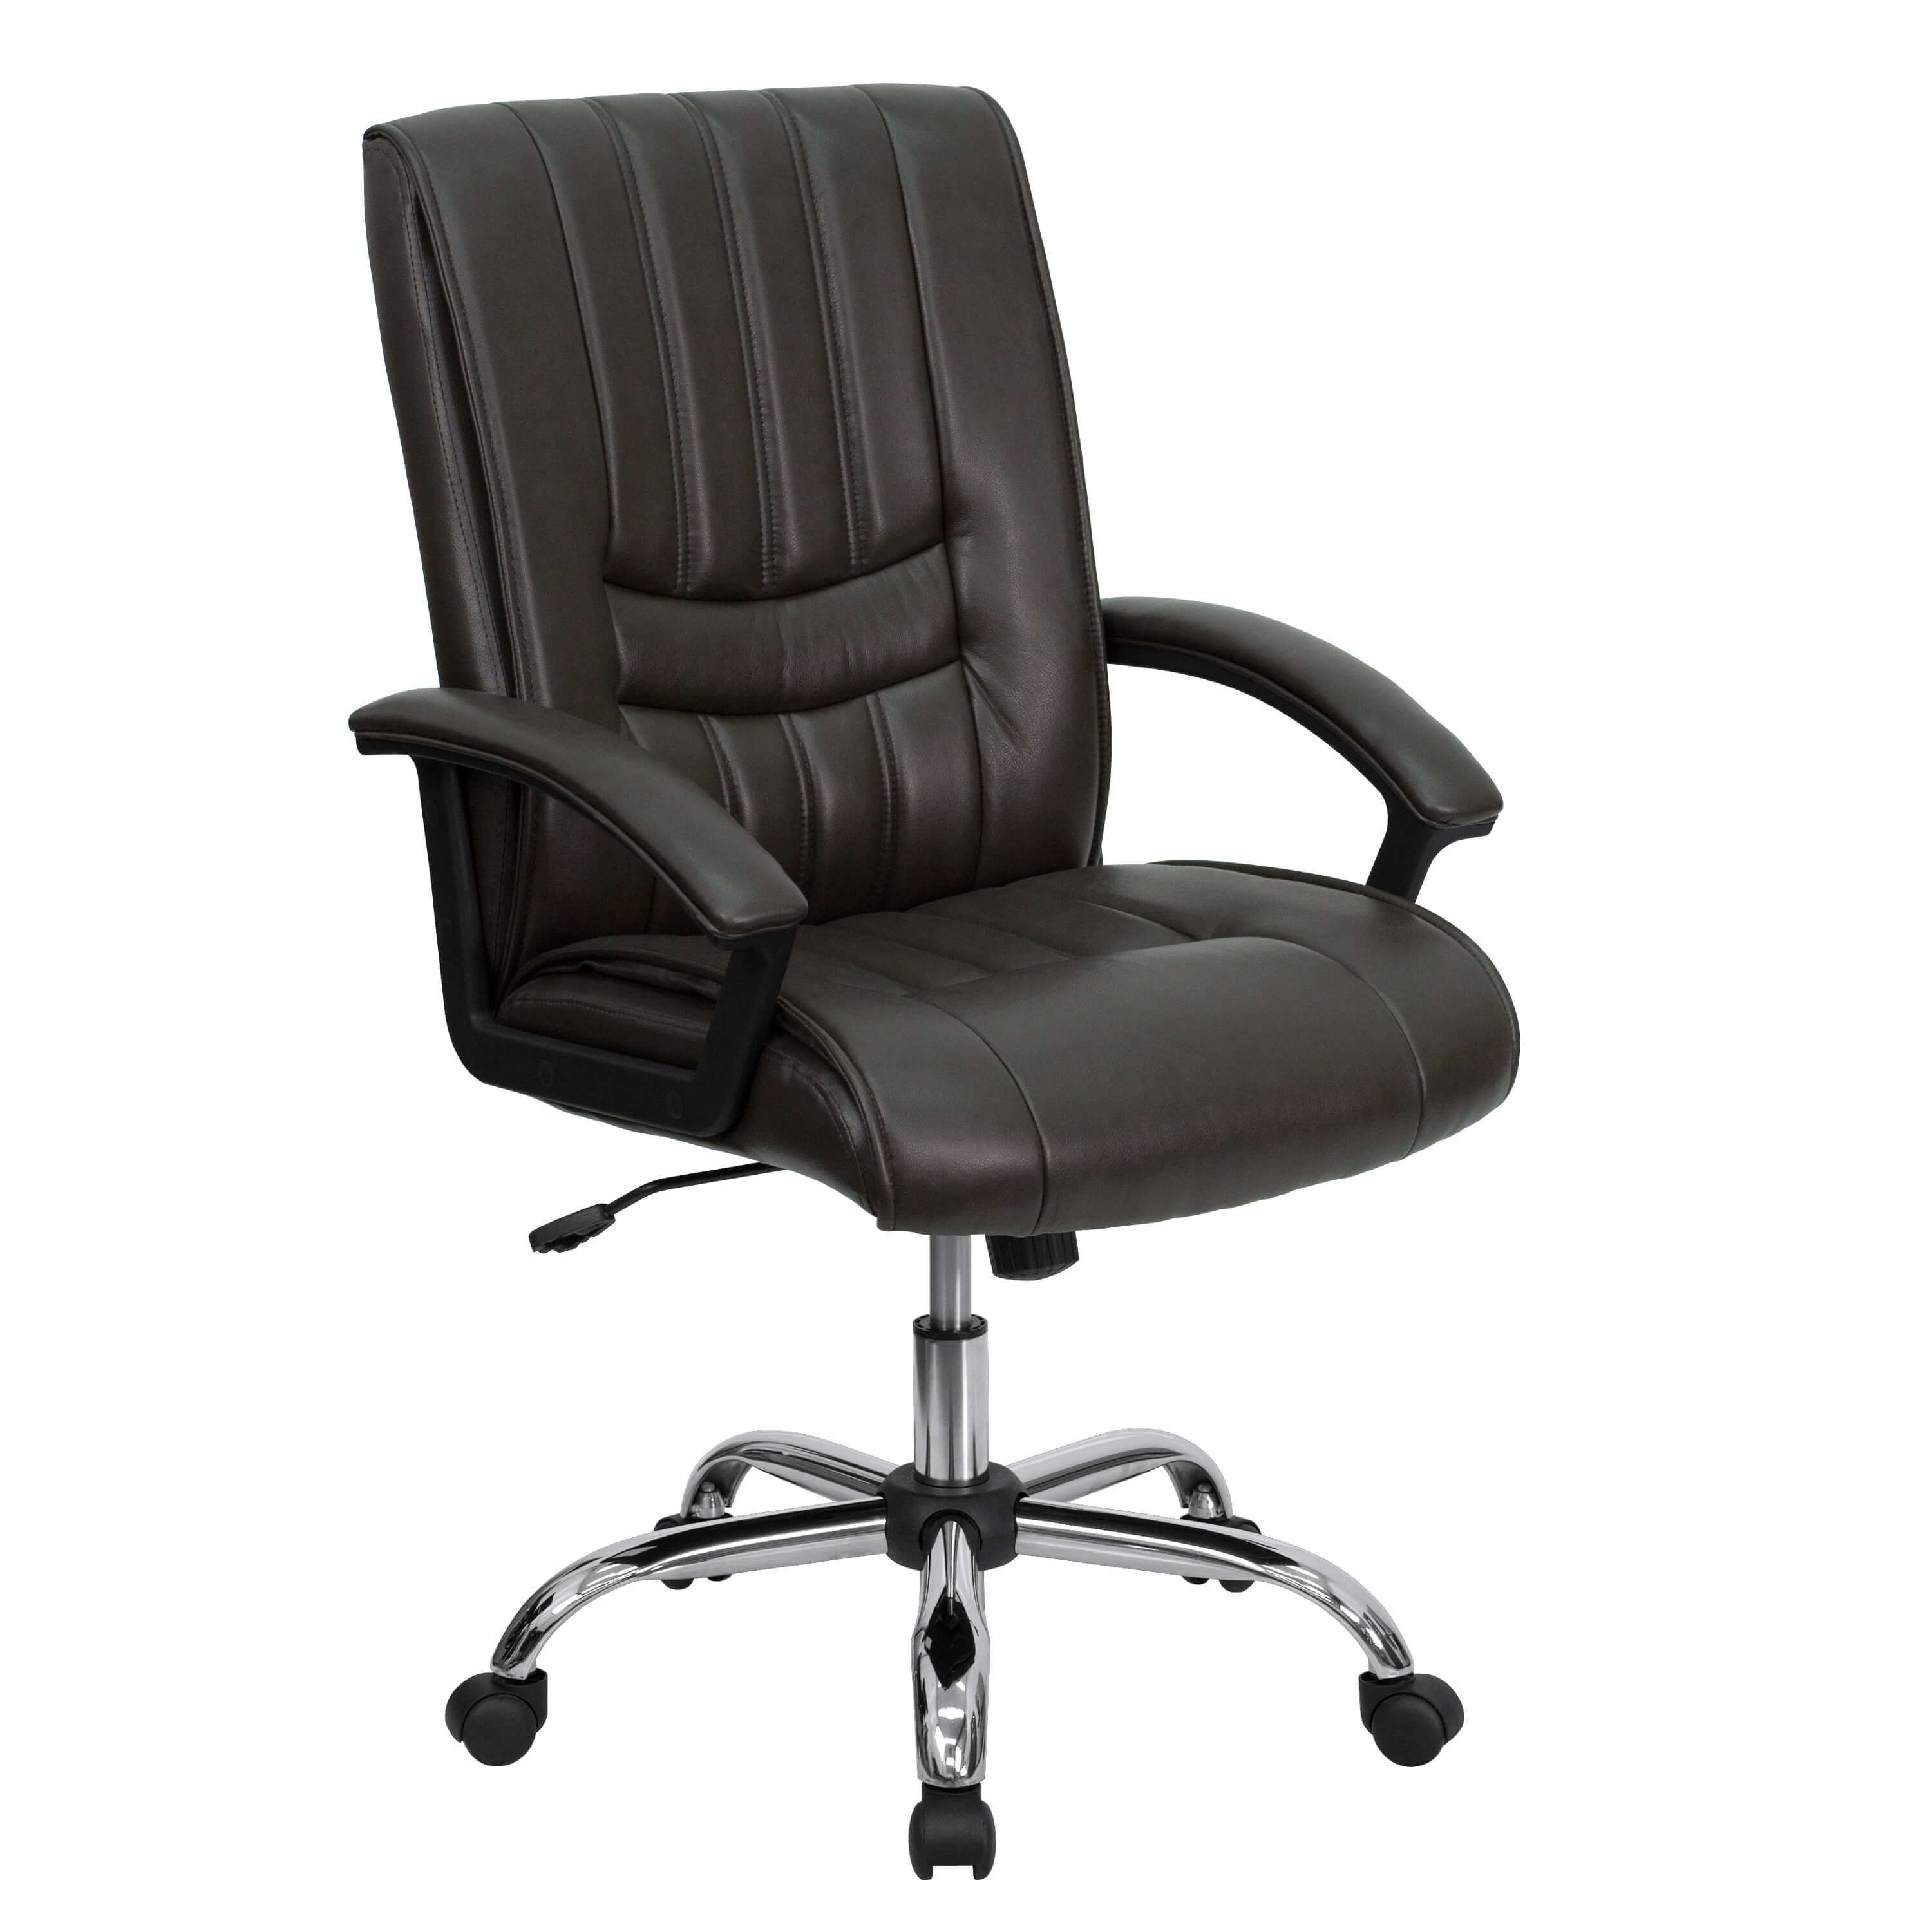 Executive Leather Chair Beacon Executive Leather Chair